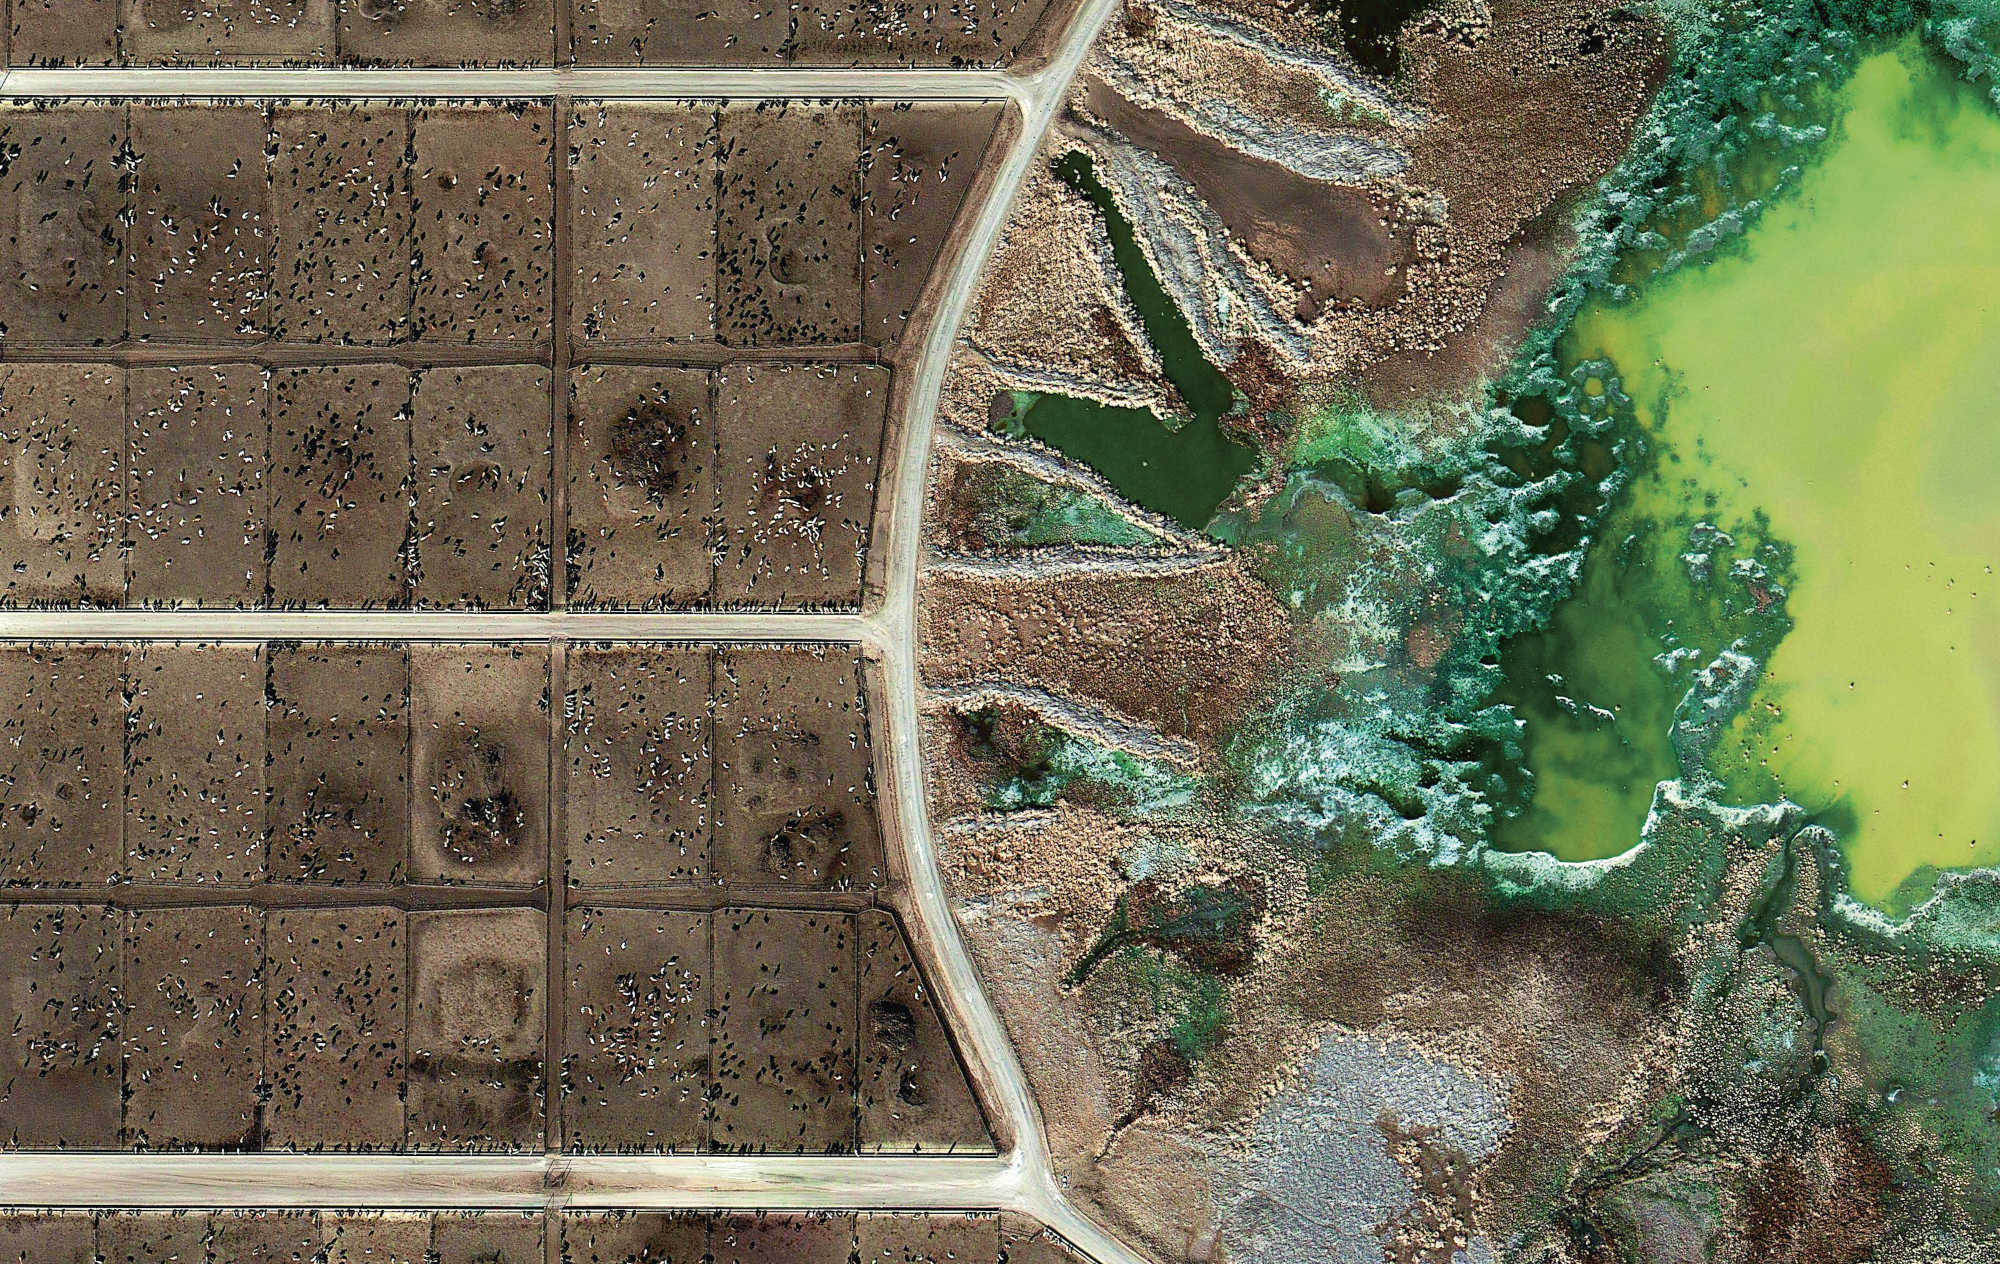 Feedlots, Mishka Henner, 2012–13. Tascosa Feedyard, Bushland, Texas (detail), 2012. Feedlots are cesspools ofraw animal waste being treated by highly polluting chemicals.